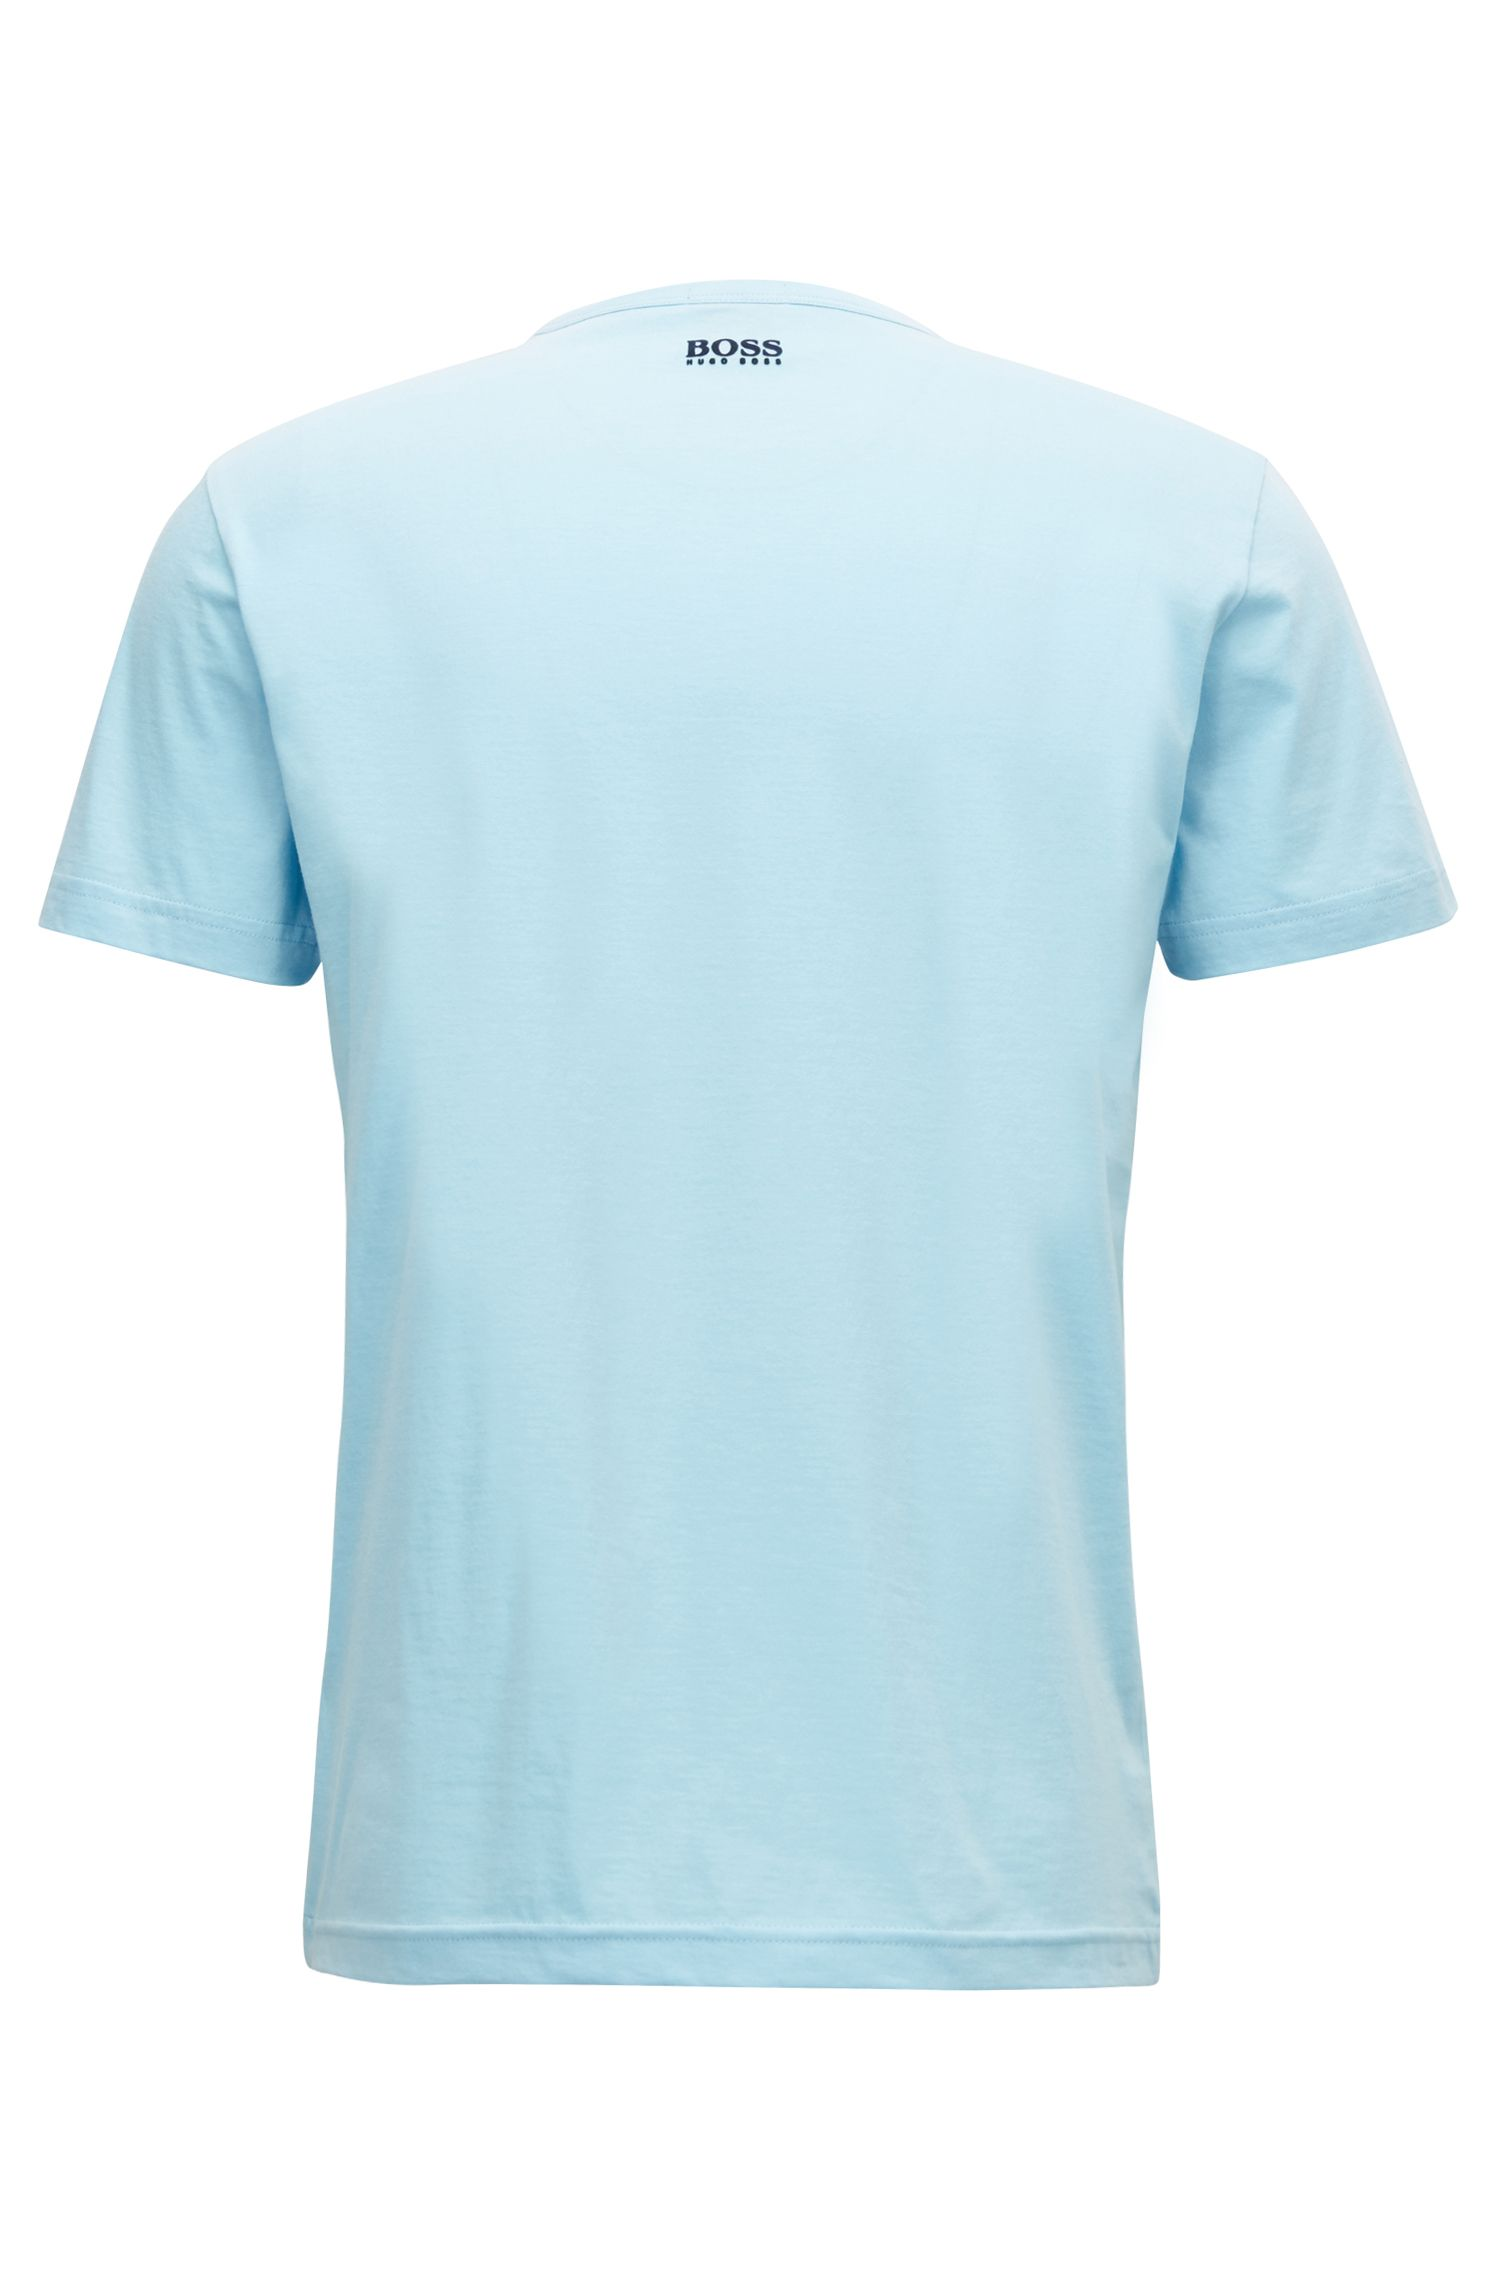 Crew-neck T-shirt in cotton with flock-print logo, Light Blue